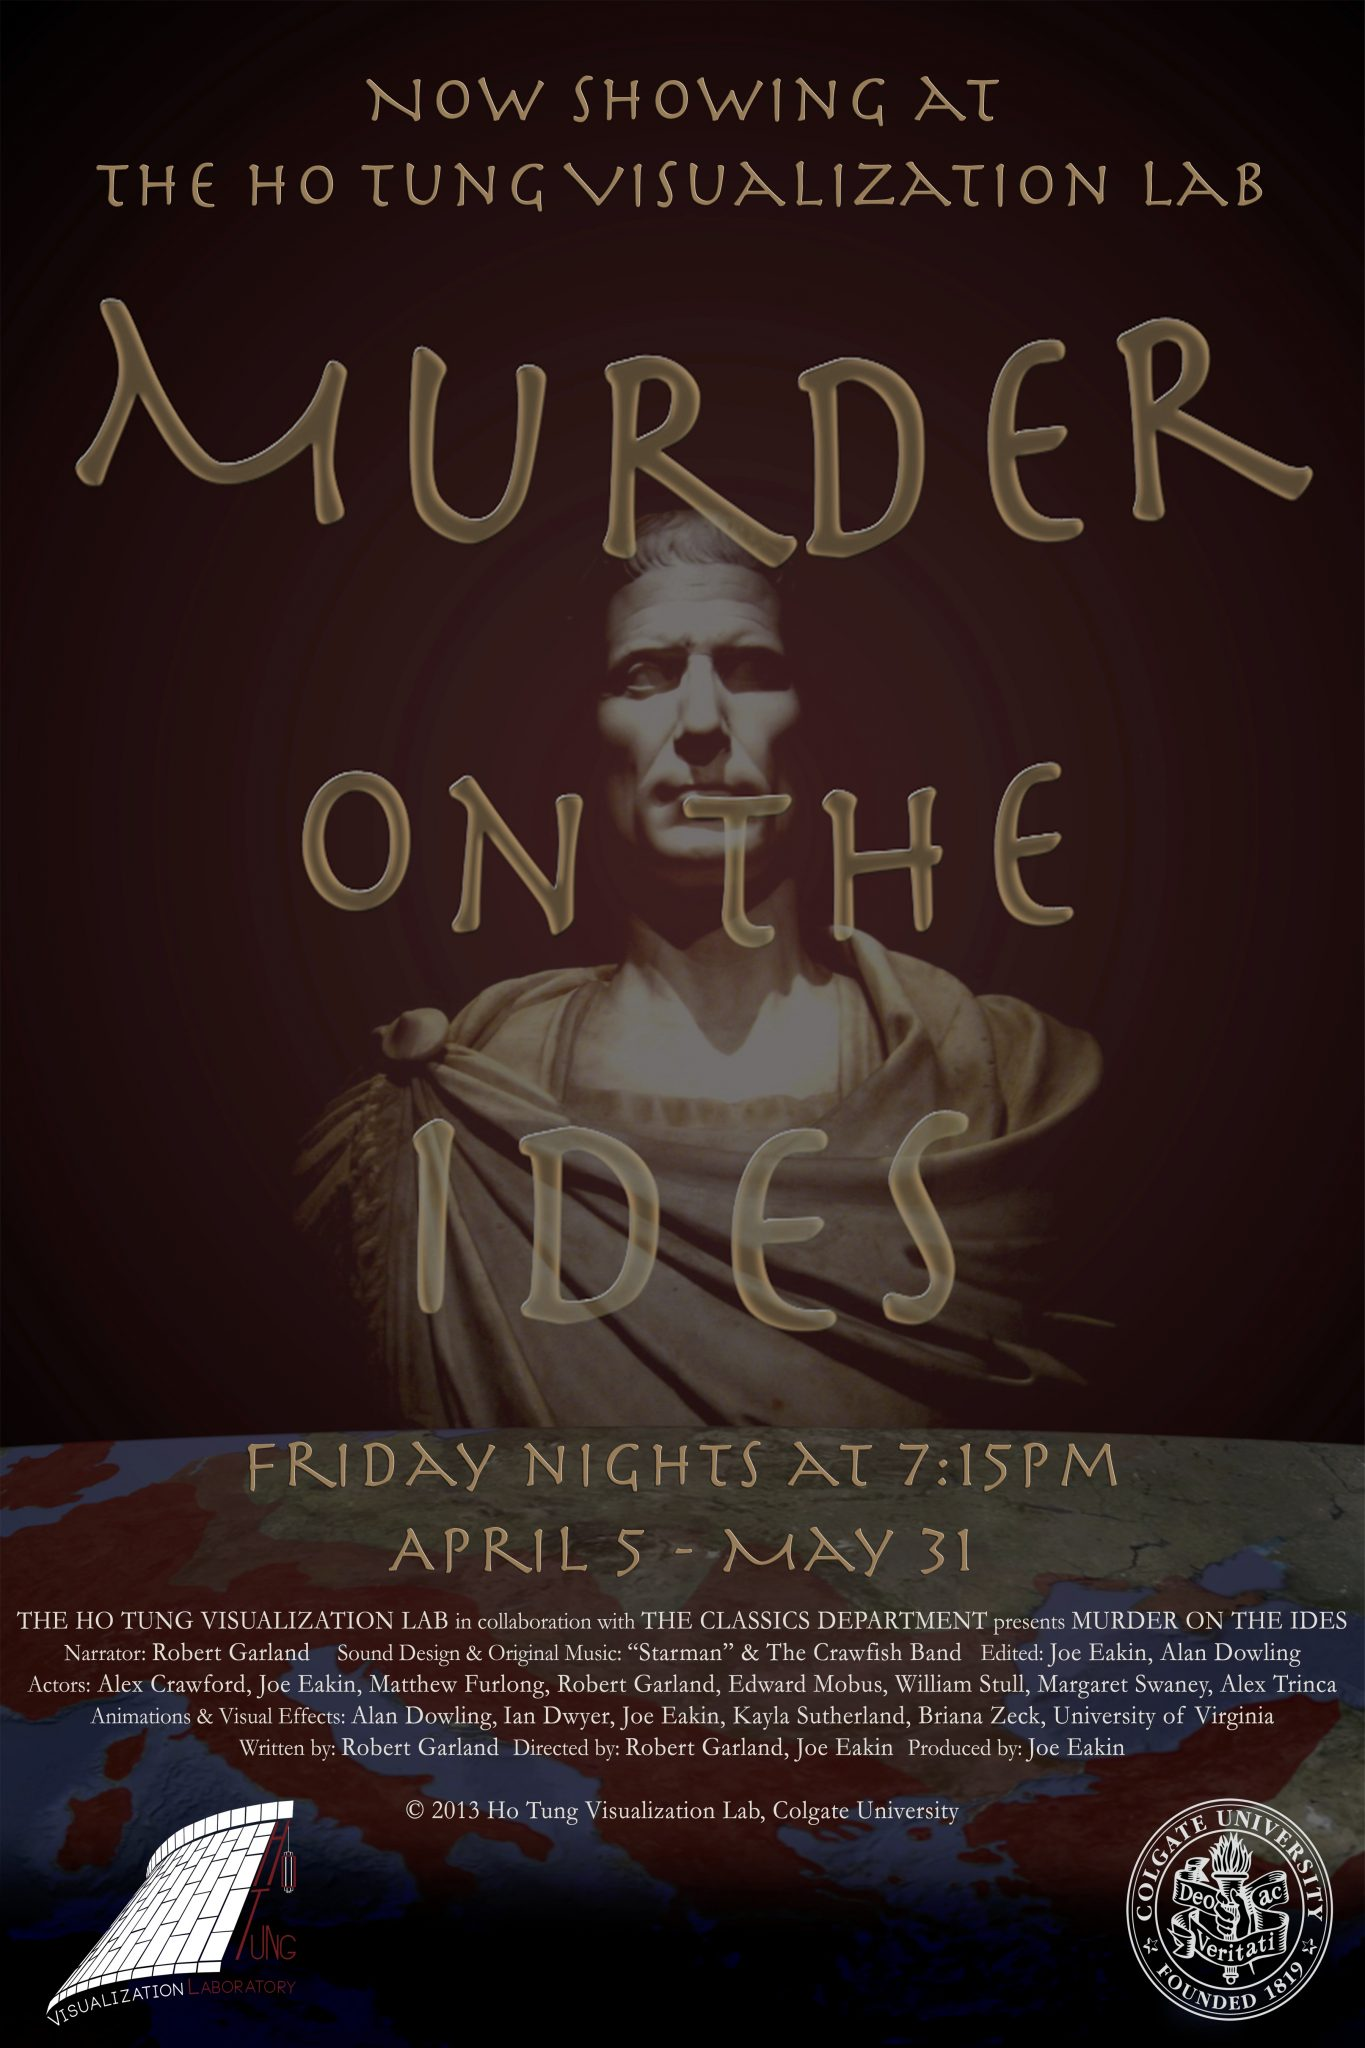 <p>Garland, Robert,  Eakin, Joe, director.</p><p><i>Murder on the Ides.</i></p><p>Poster. Ho Tung Visualization Lab,  2013.</p><p>